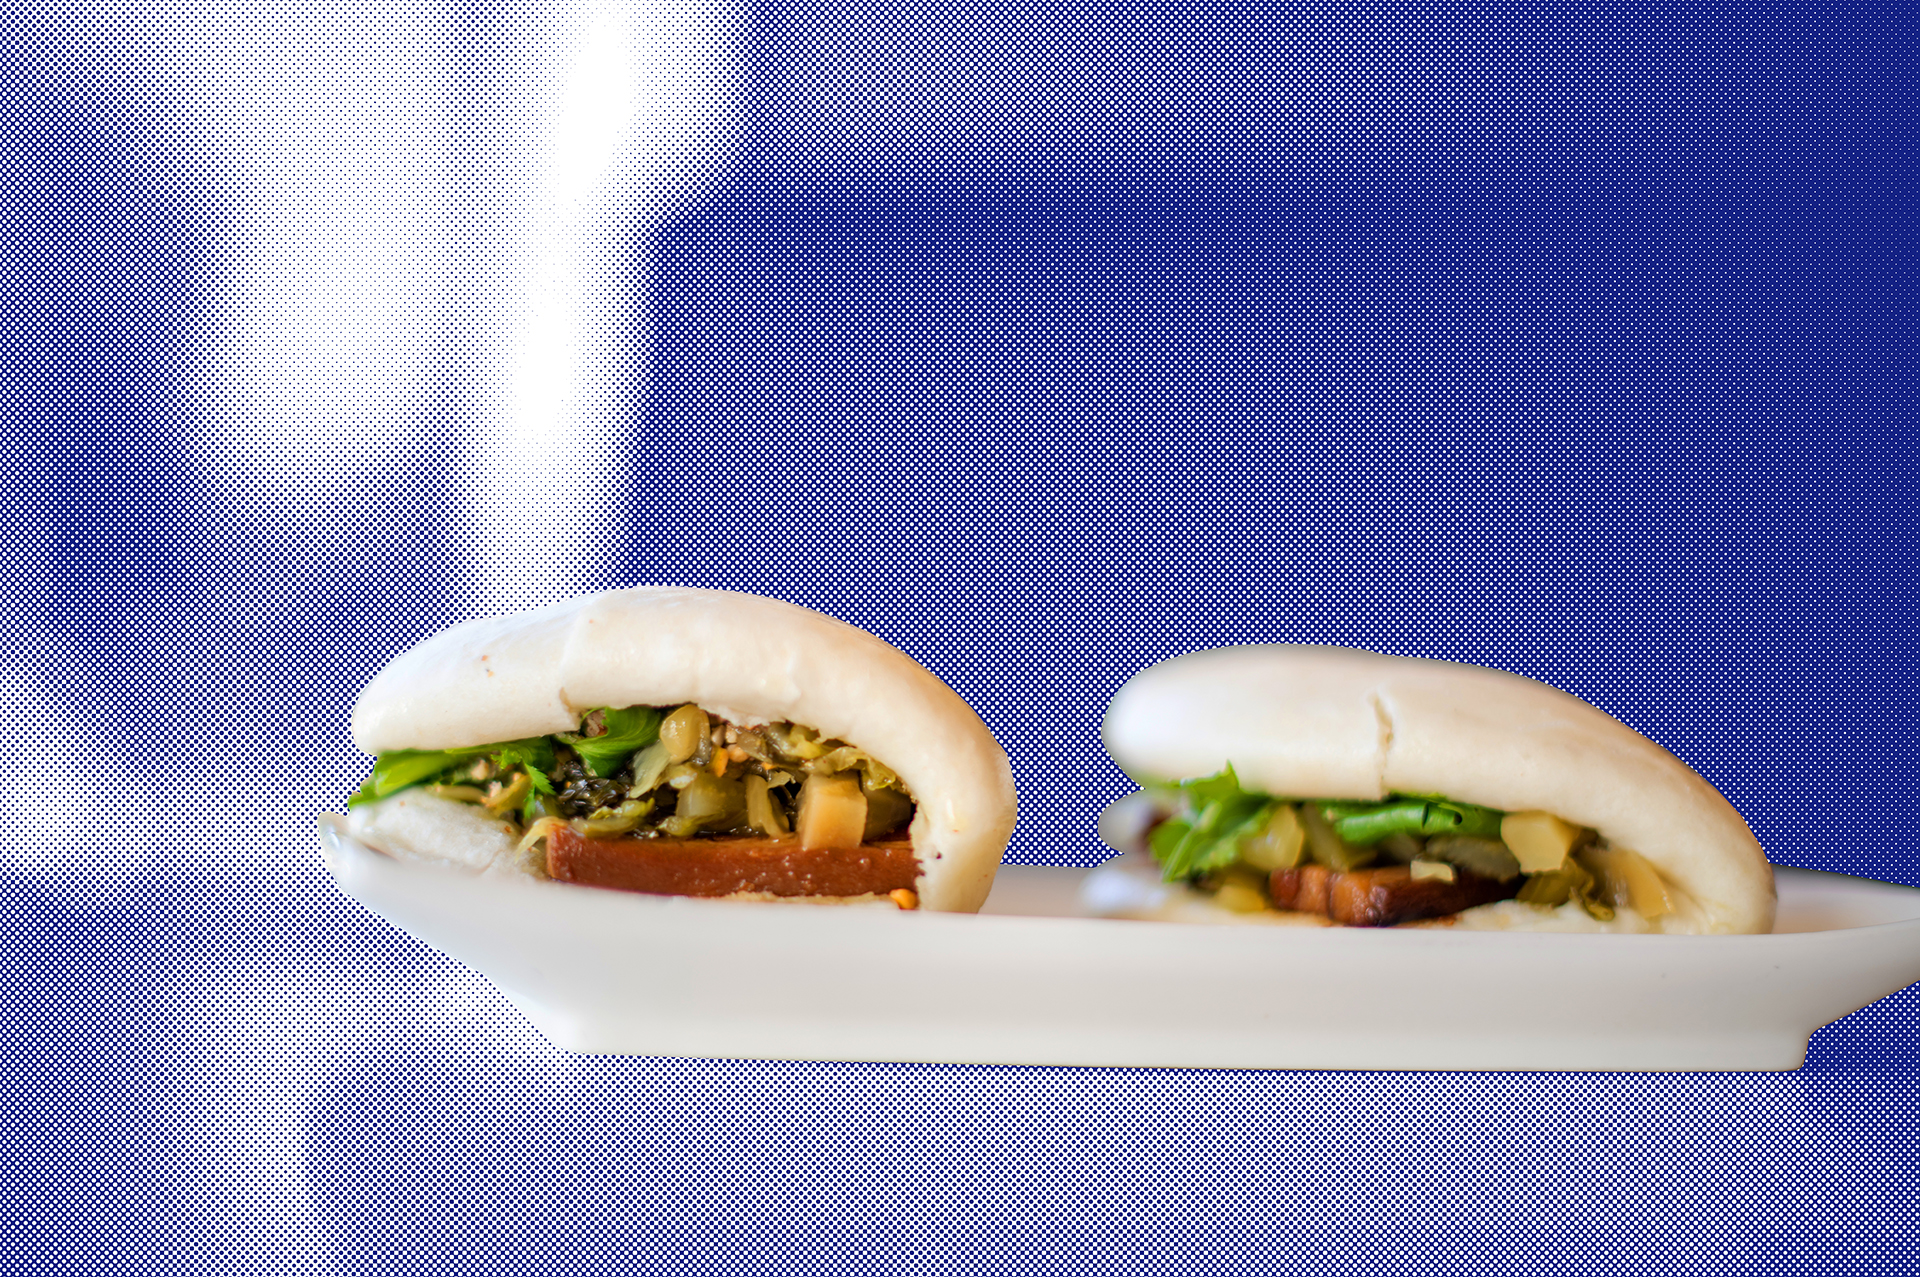 A pair of gua bao, or Taiwanese pork belly buns, on a white plate, against a stylized blue backdrop.